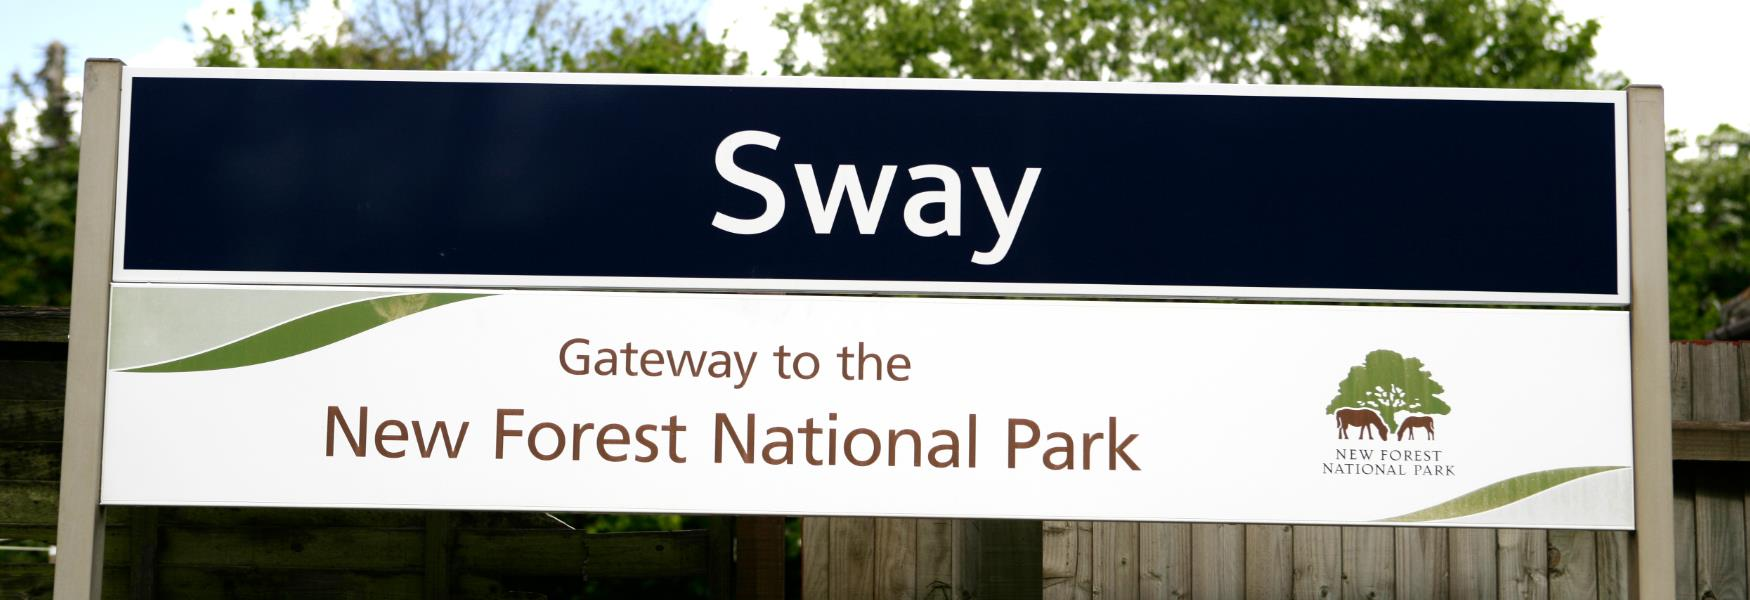 sway train station sign in sway in the new forest